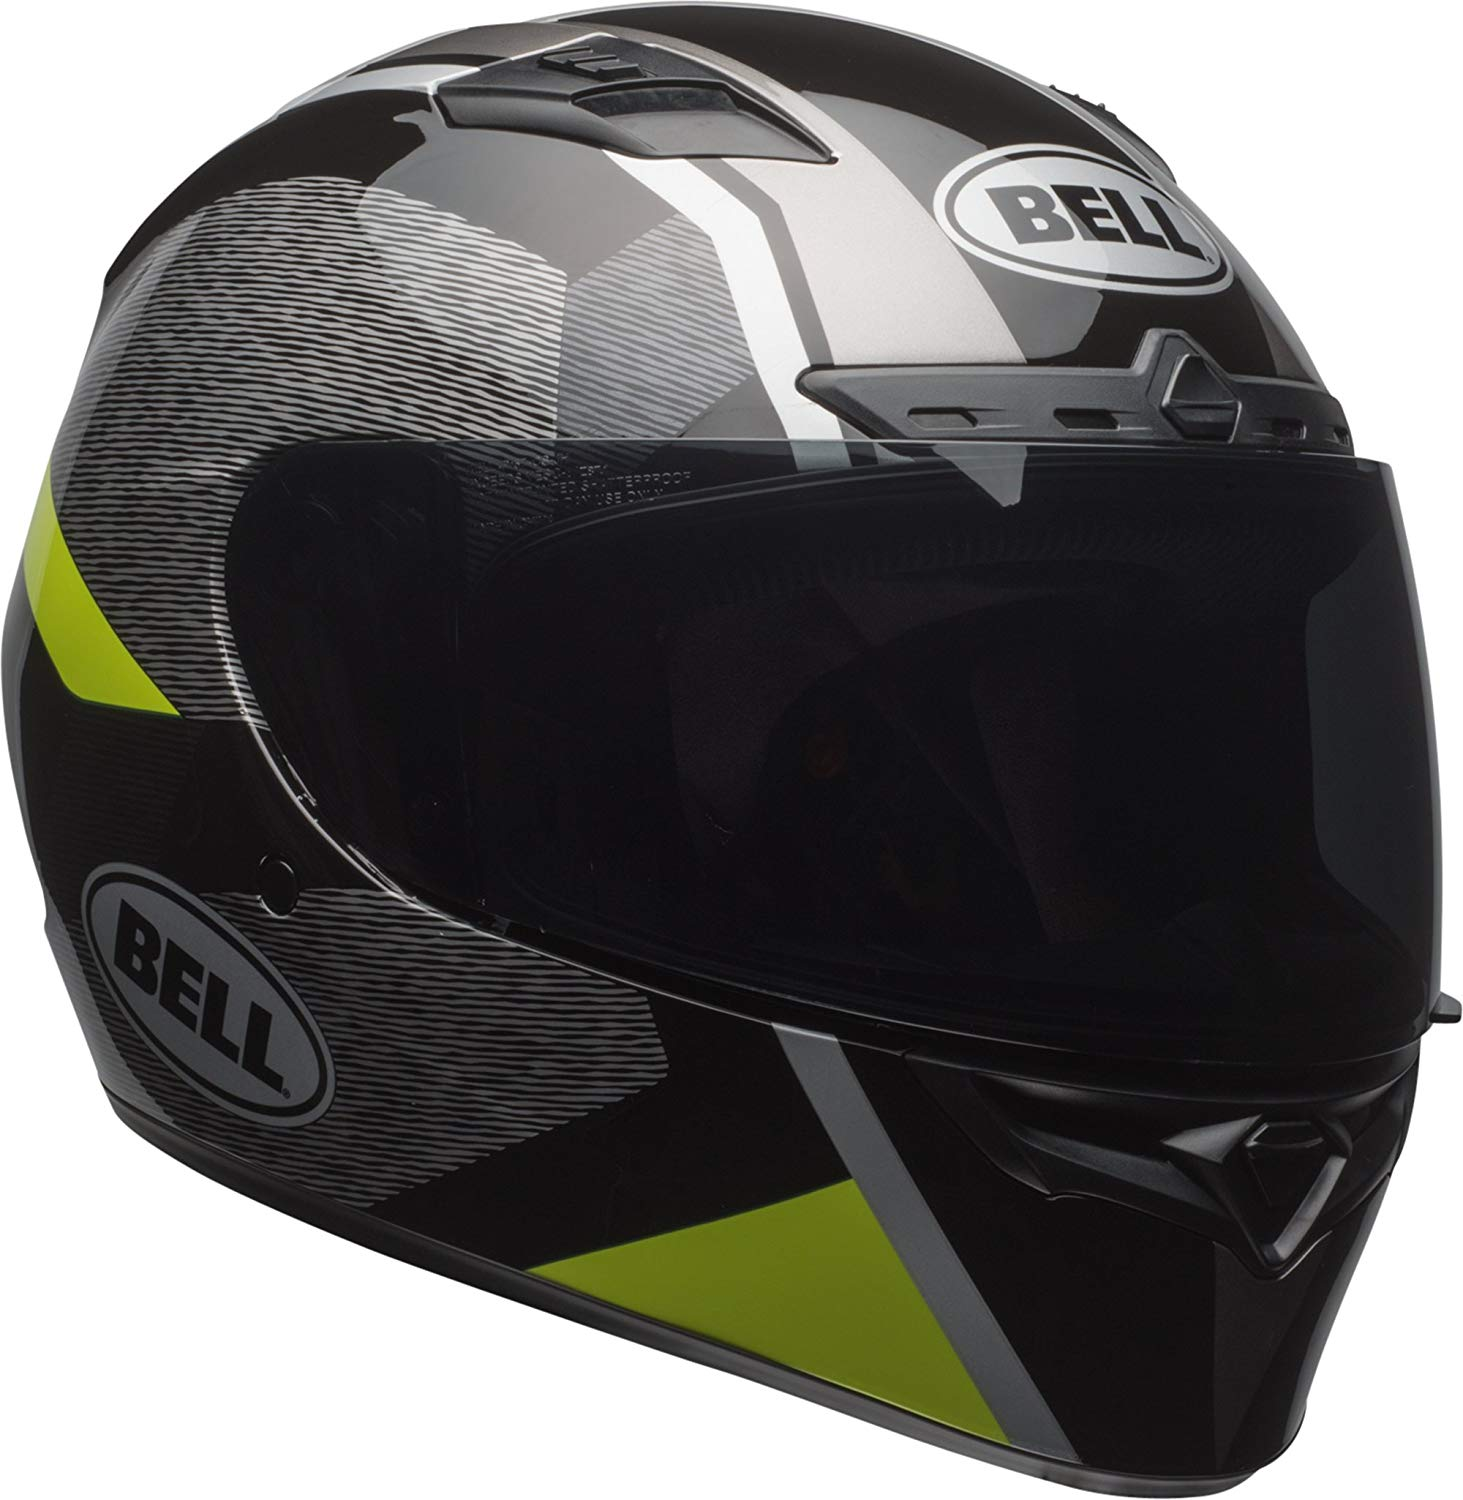 Bell Qualifier DLX MIPS Full-Face Motorcycle Helmet